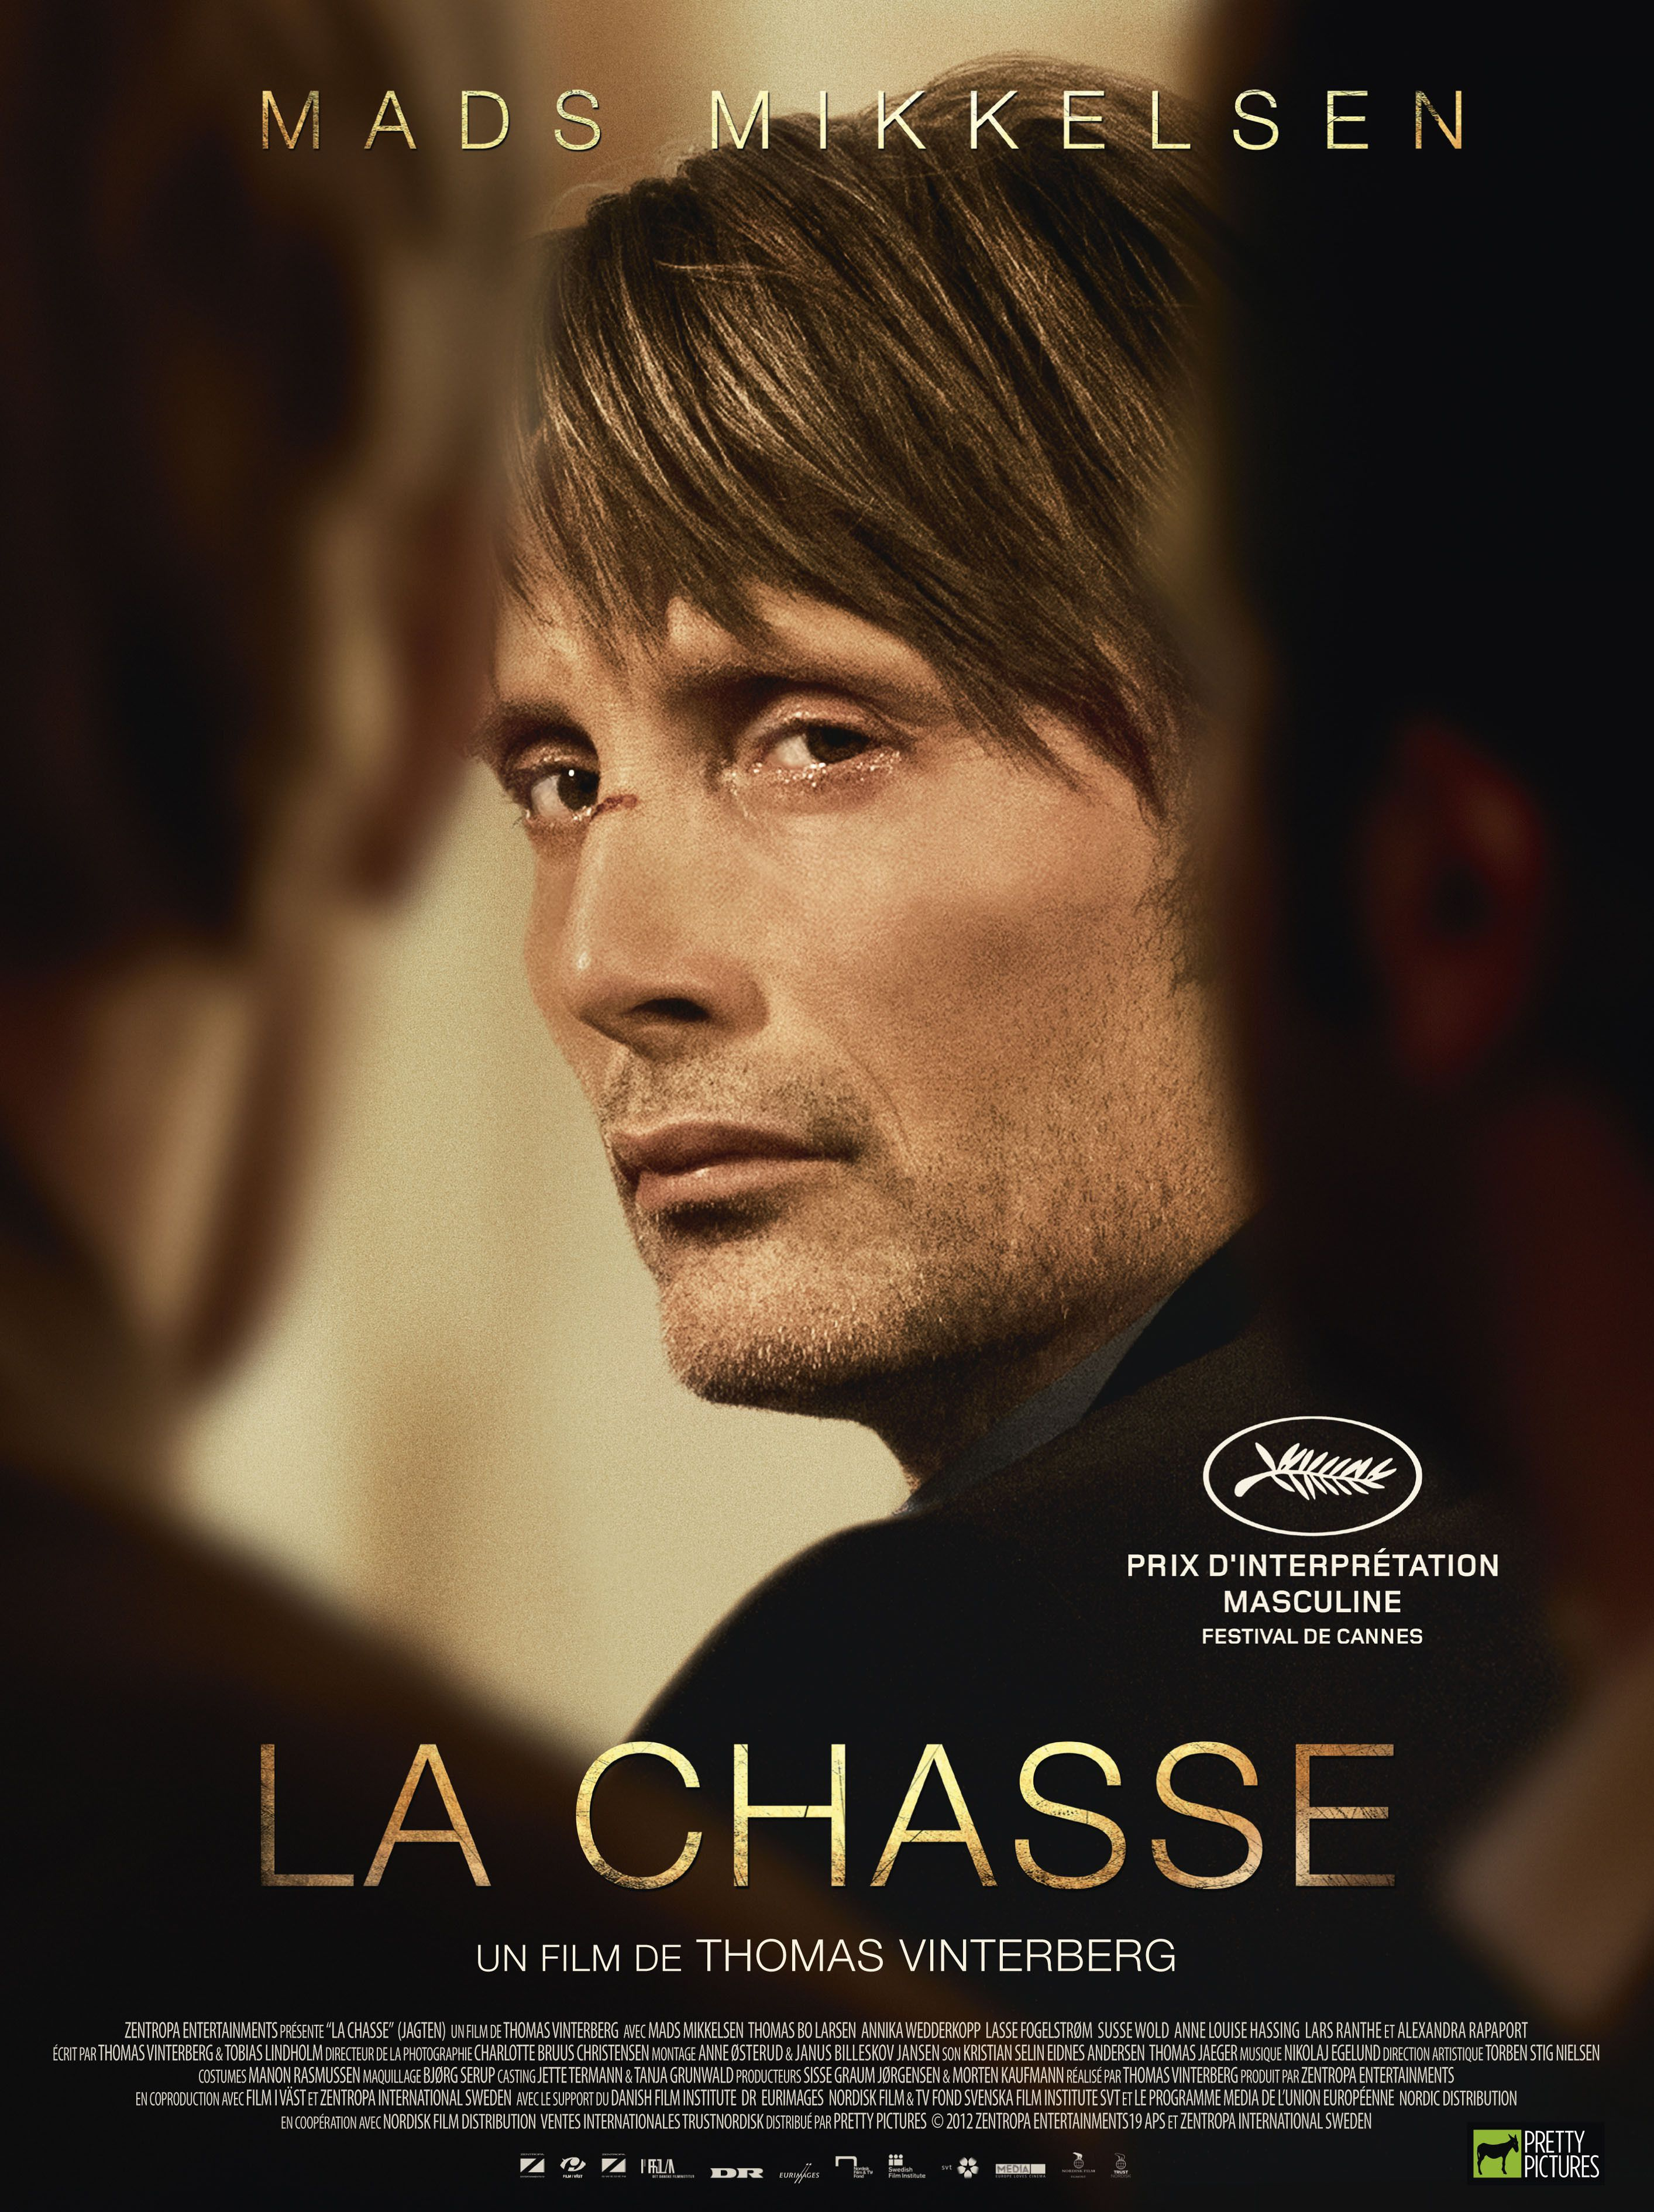 La Chasse - Film (2012) streaming VF gratuit complet